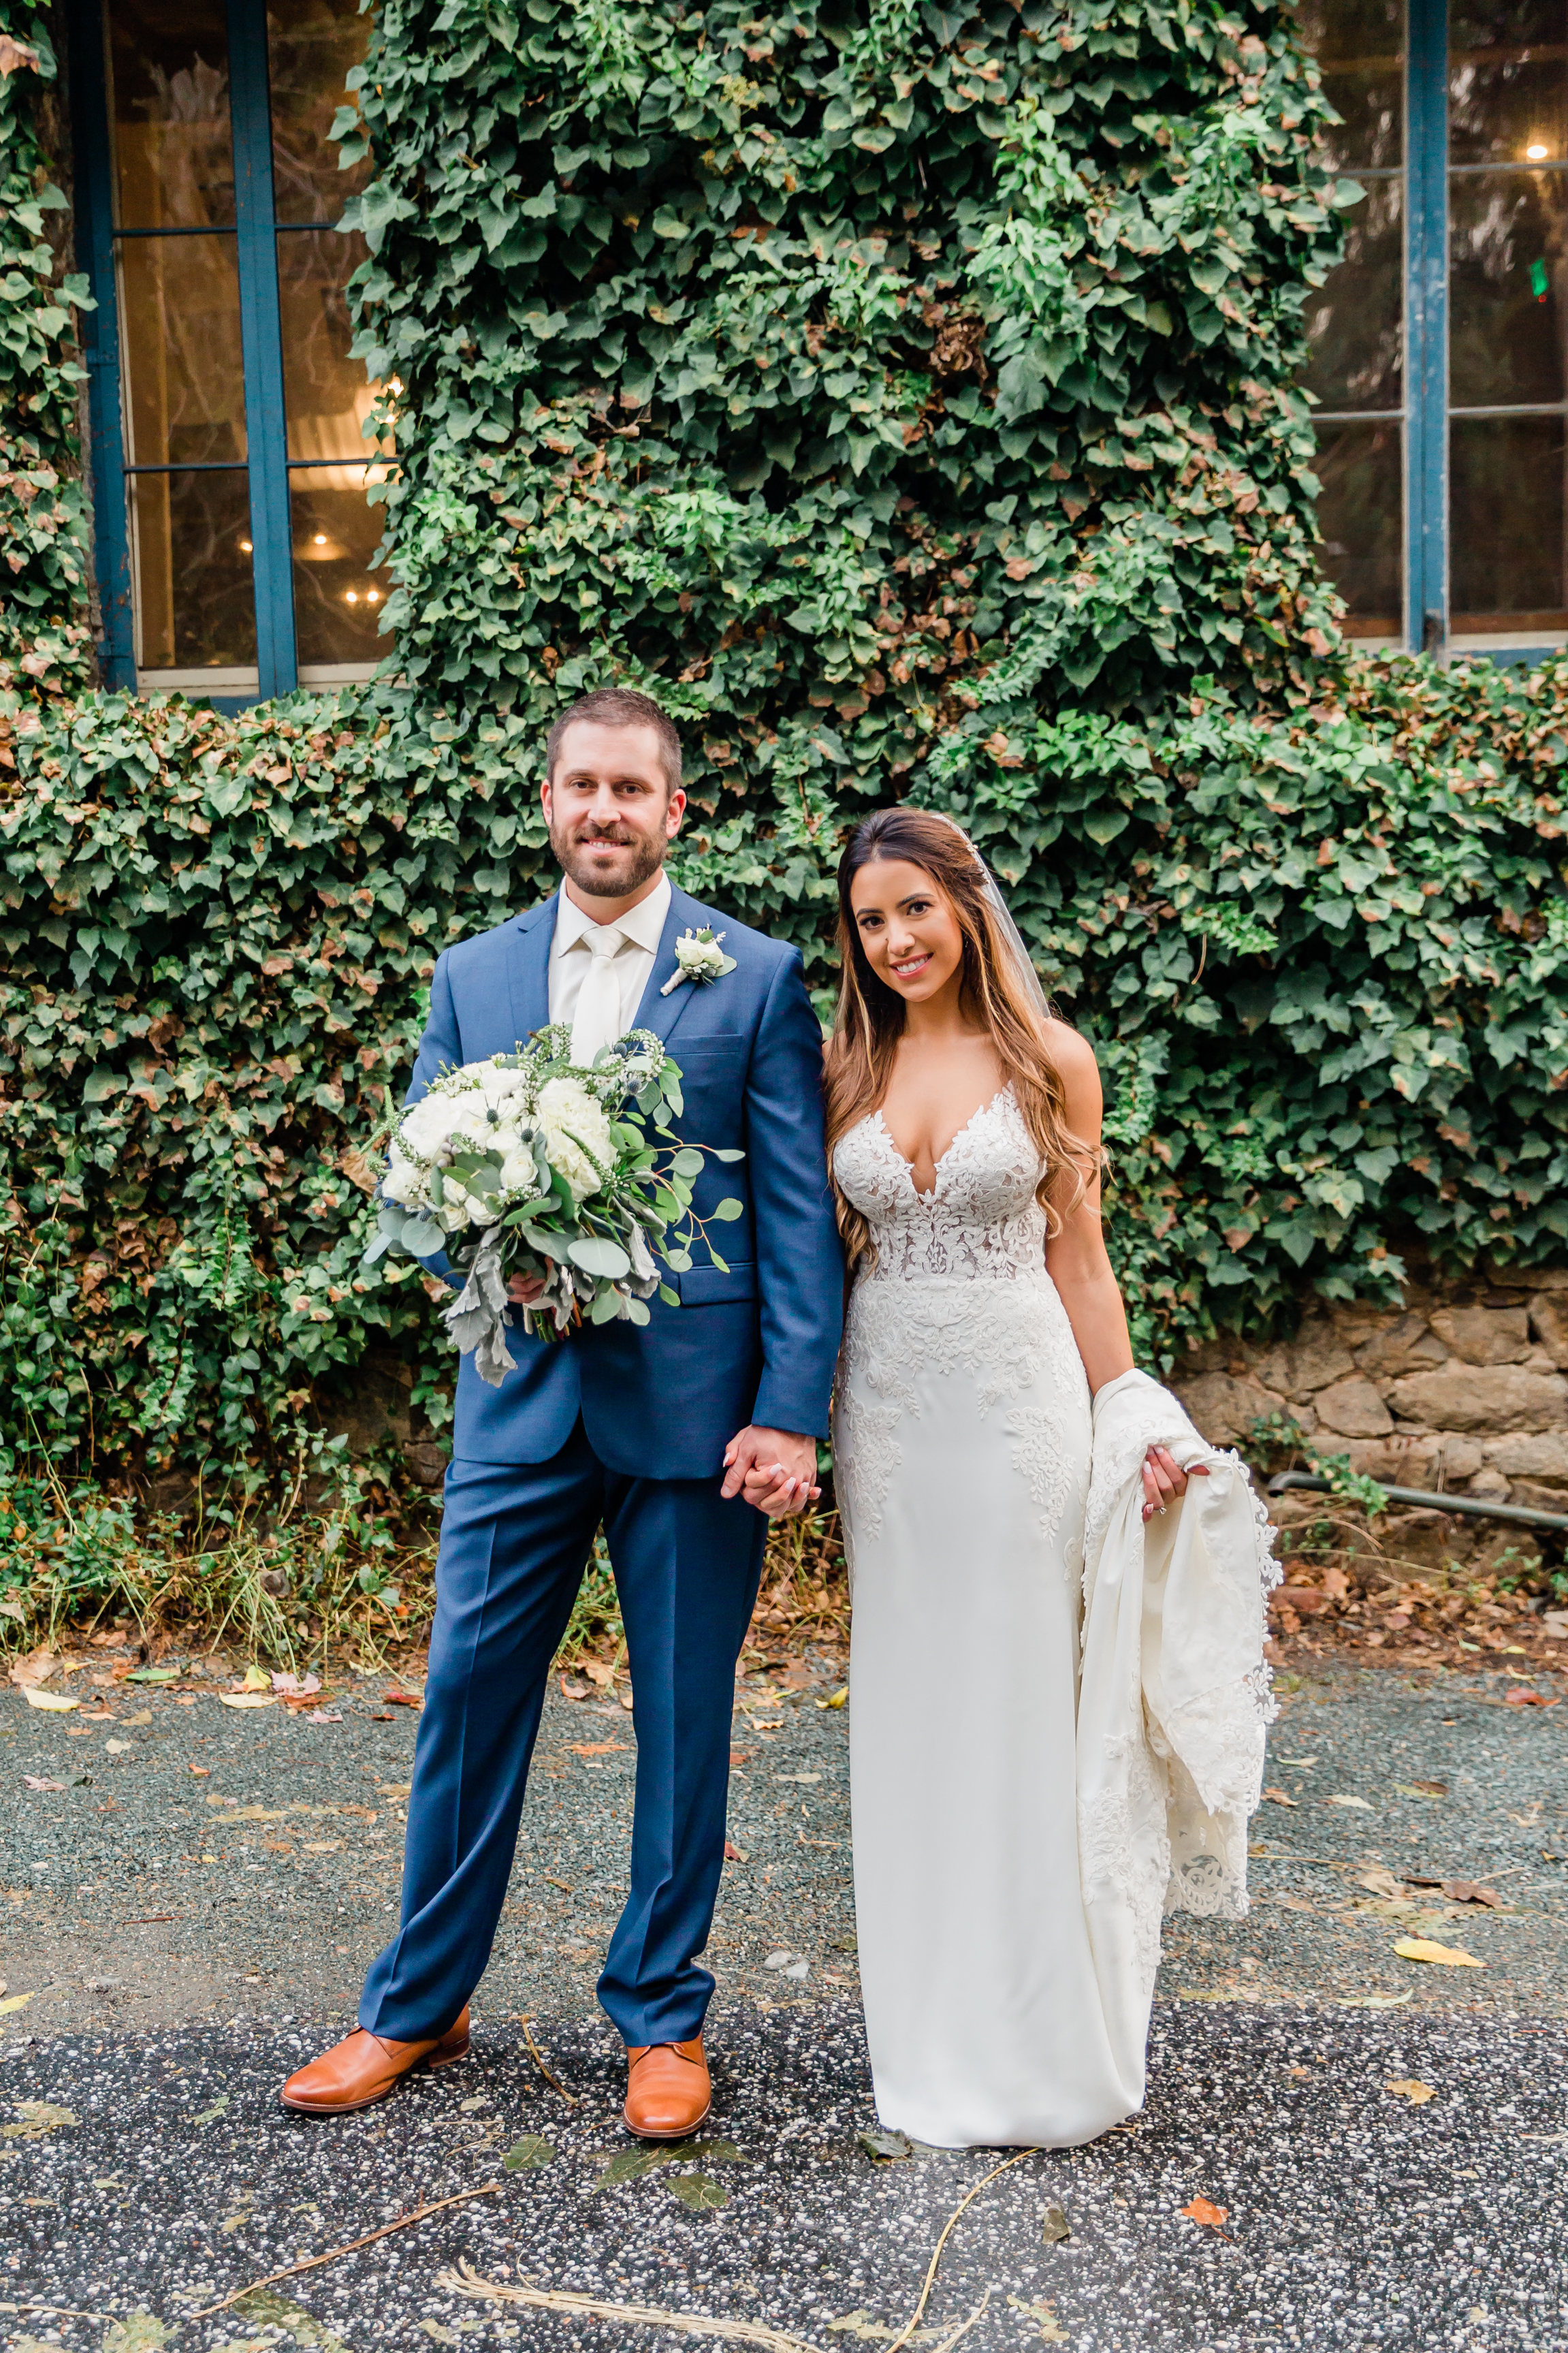 Jillian and Peter Married - Sneak Peeks - Lauren Alisse Photography - Nov 2018-37.jpg